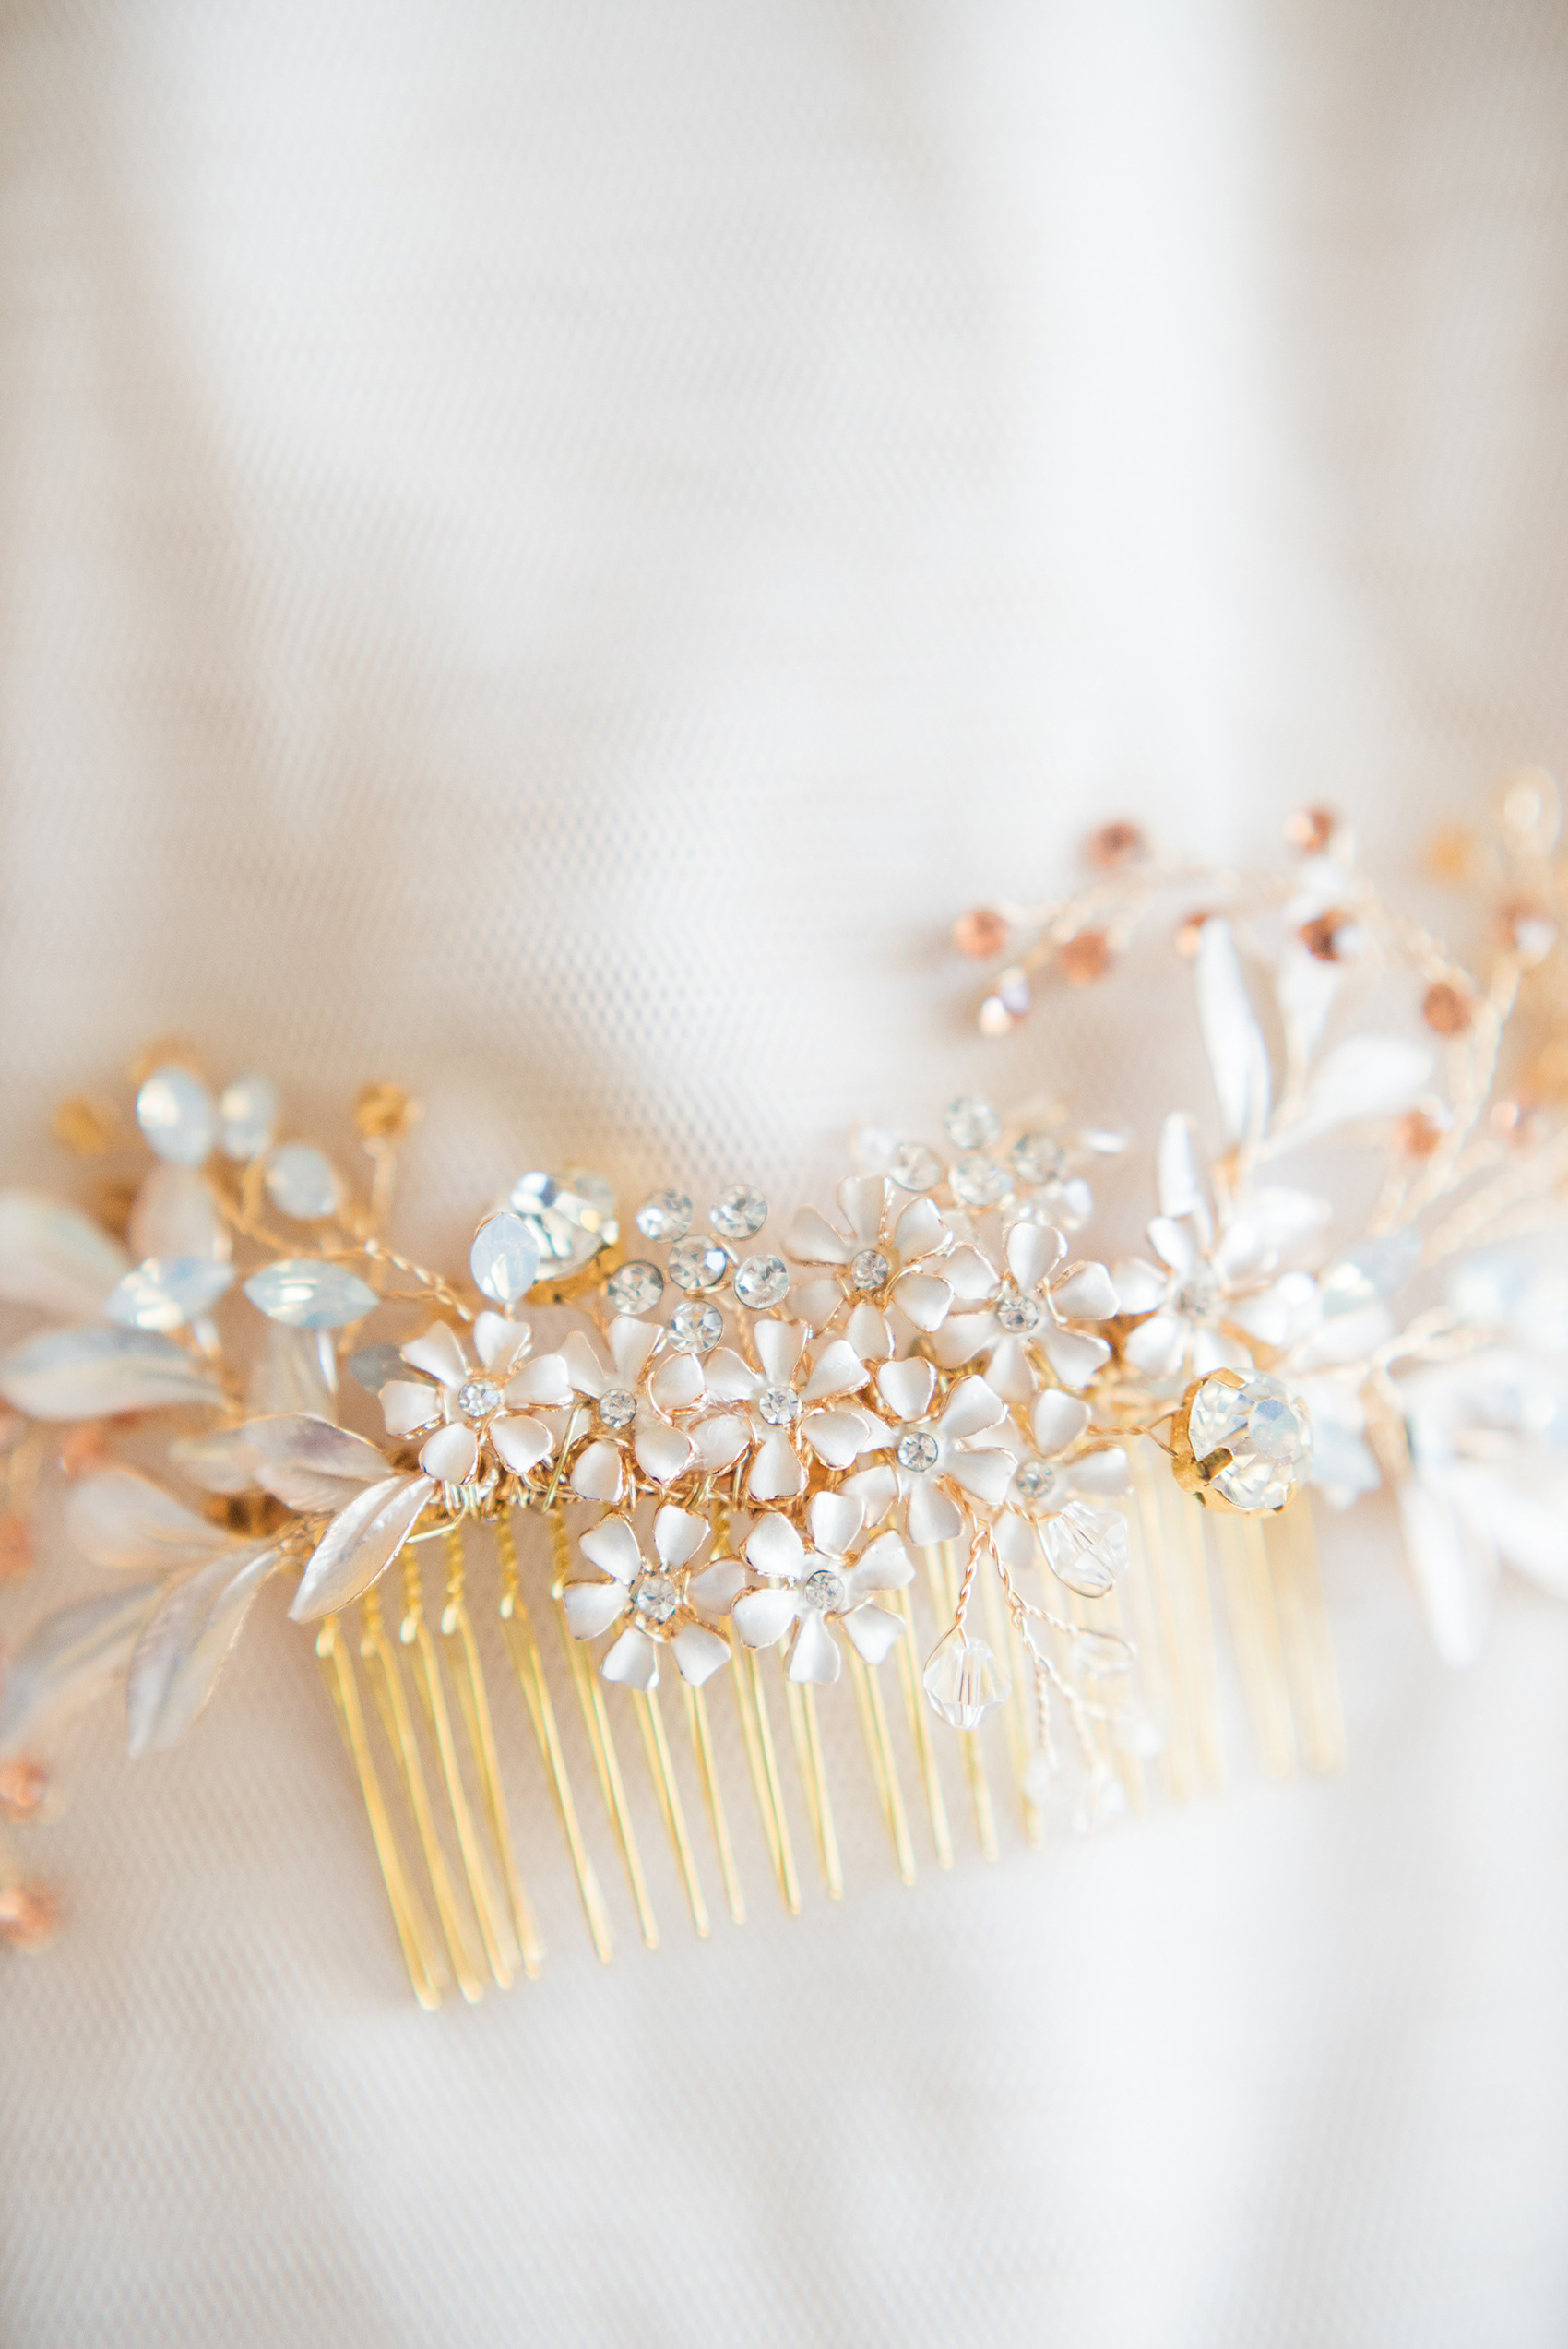 Mikkel Paige Photography photos from a wedding at Grand Paraiso, Mexico, Playa del Carmen Iberostar resort. Detail picture of the bride's rhinestone hair comb.